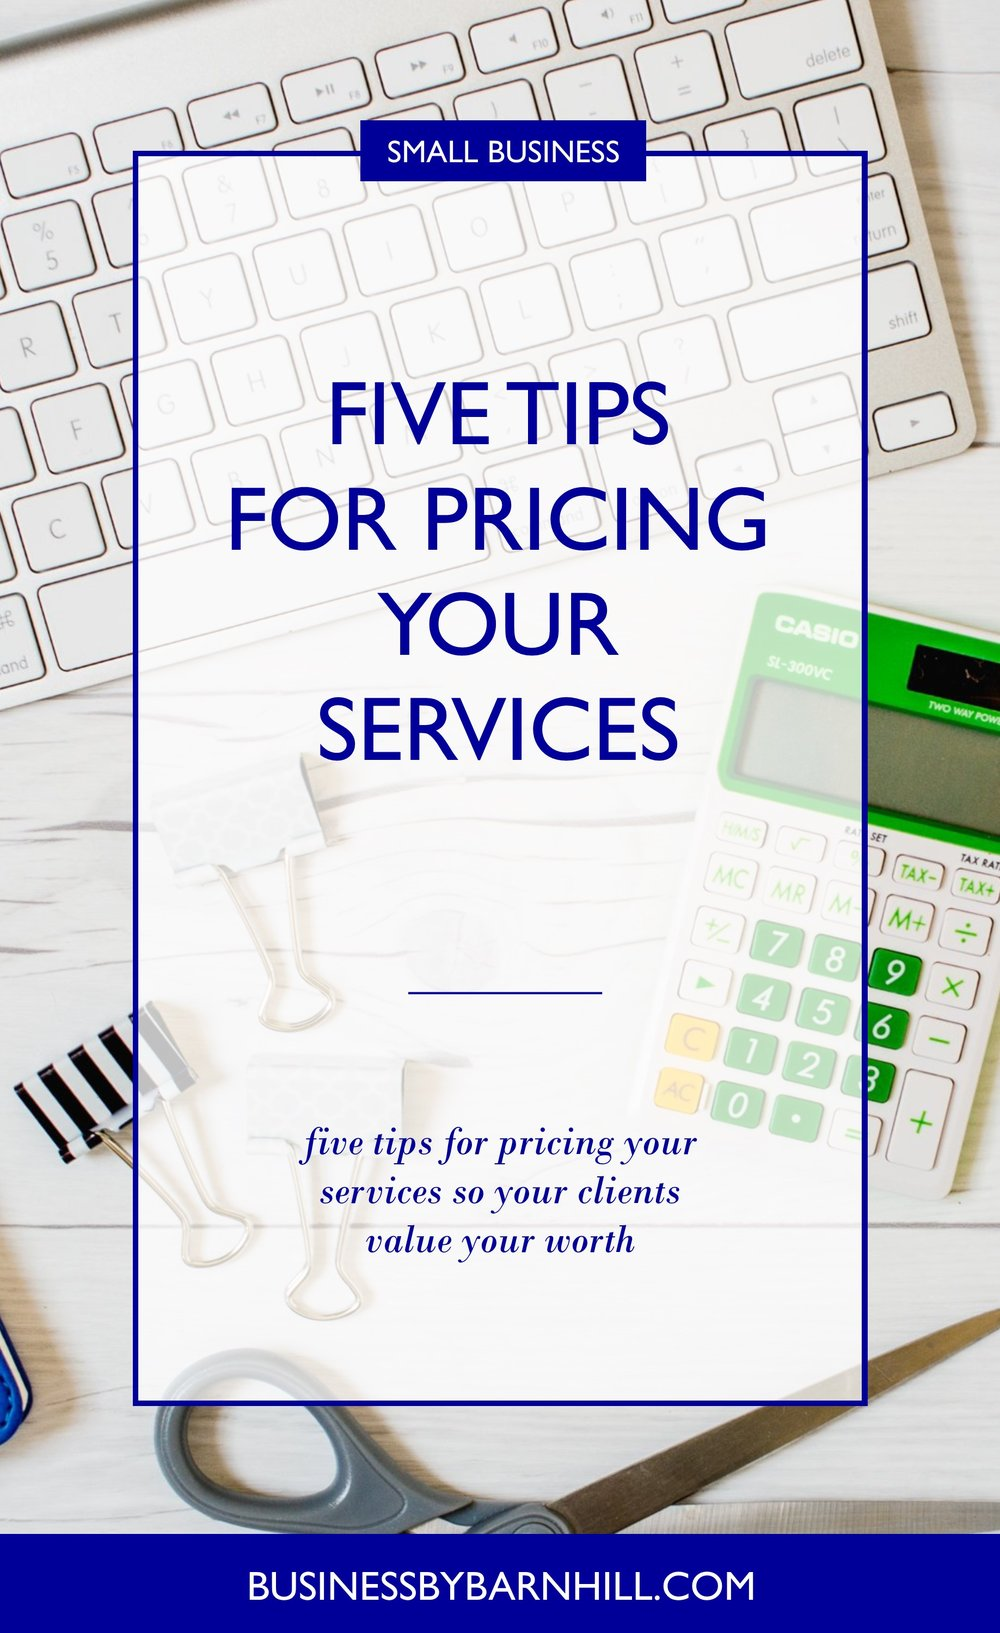 business by barnhill pinterest 5 tips for pricing your services 2.jpg